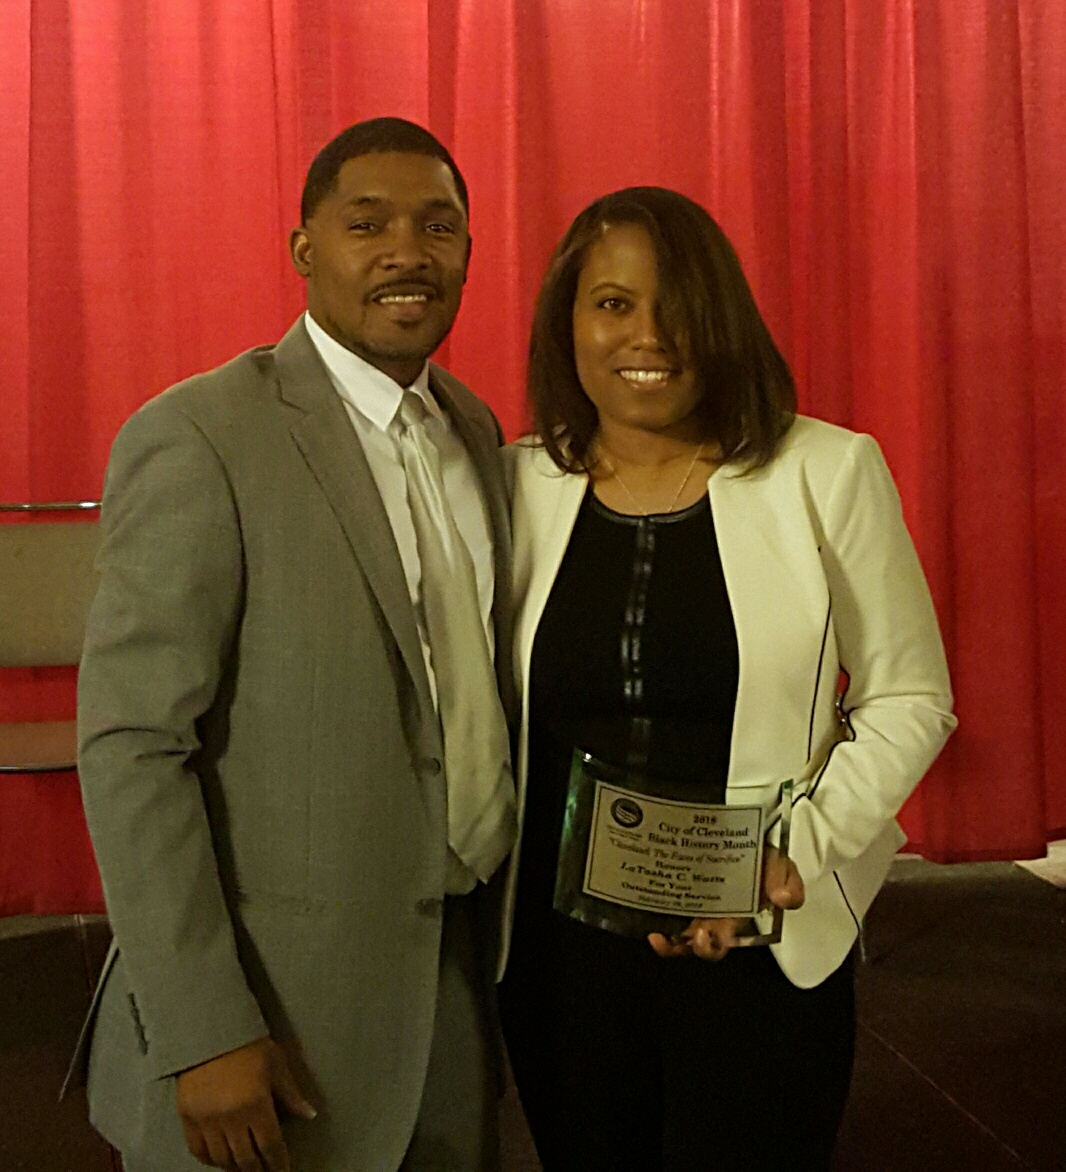 LaTasha C. Watts & The Honorable Judge Michael Ryan